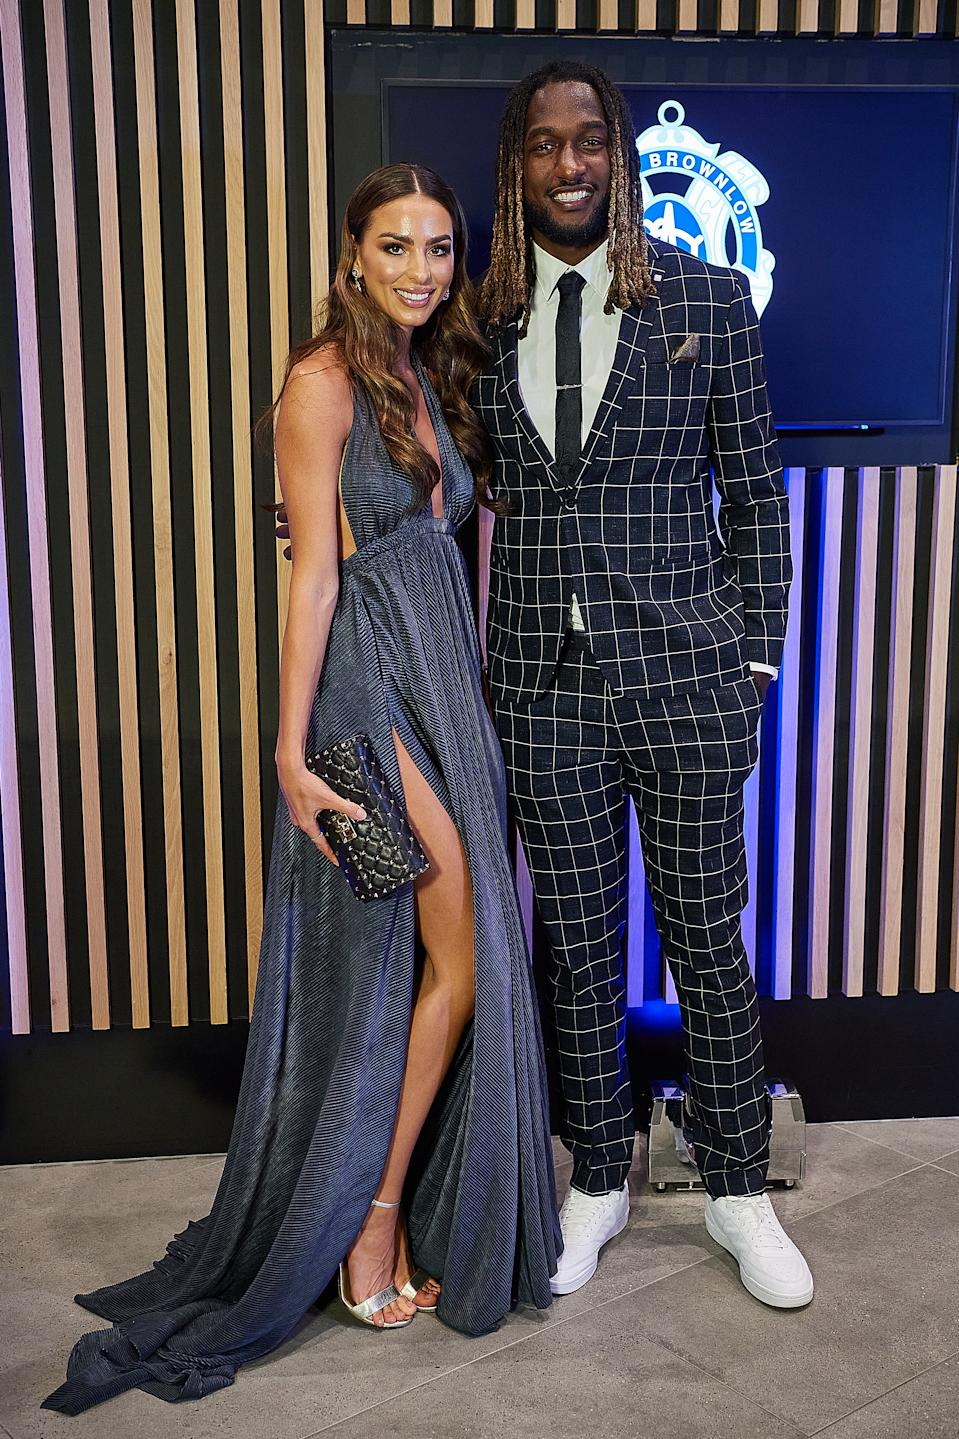 Nic Naitanui and partner Brittany Brown pose for a photo during the 2020 Brownlow Medal Count at Optus Stadium on October 18, 2020 in Perth, Australia.